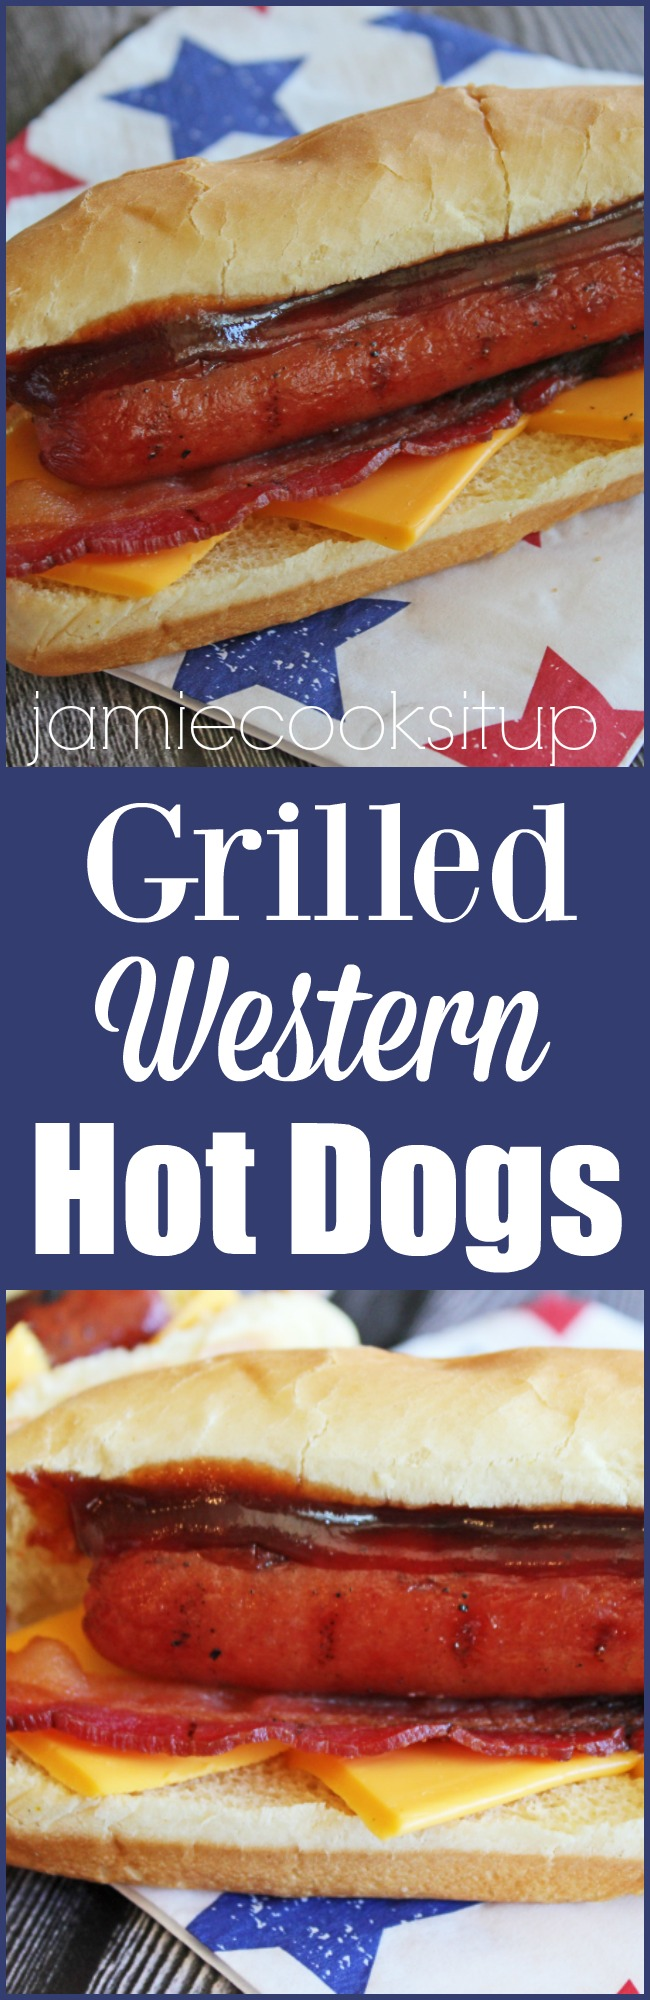 Grilled Western Hot Dogs from Jamie Cooks It Up